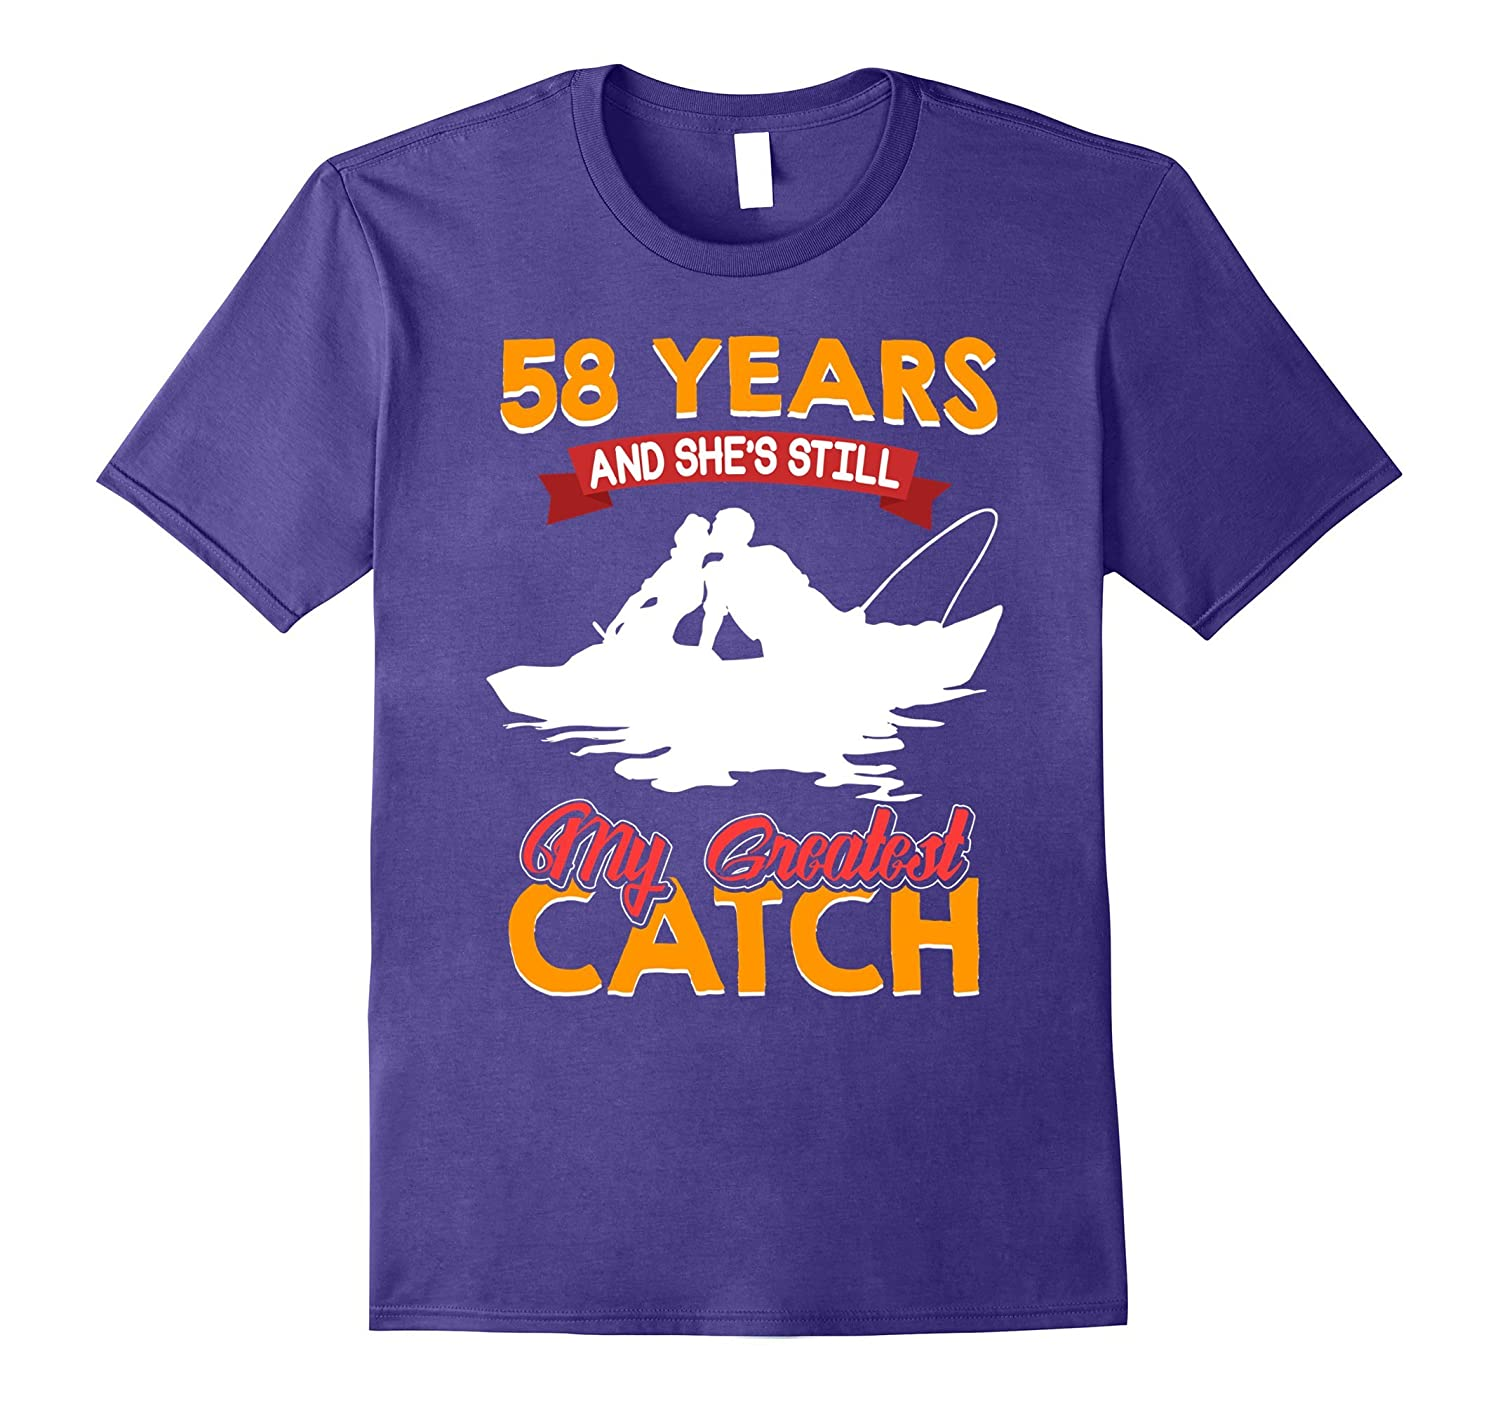 43rd Wedding Anniversary Gifts: Amazing T-Shirt For Husband 43rd Wedding Anniversary Gift